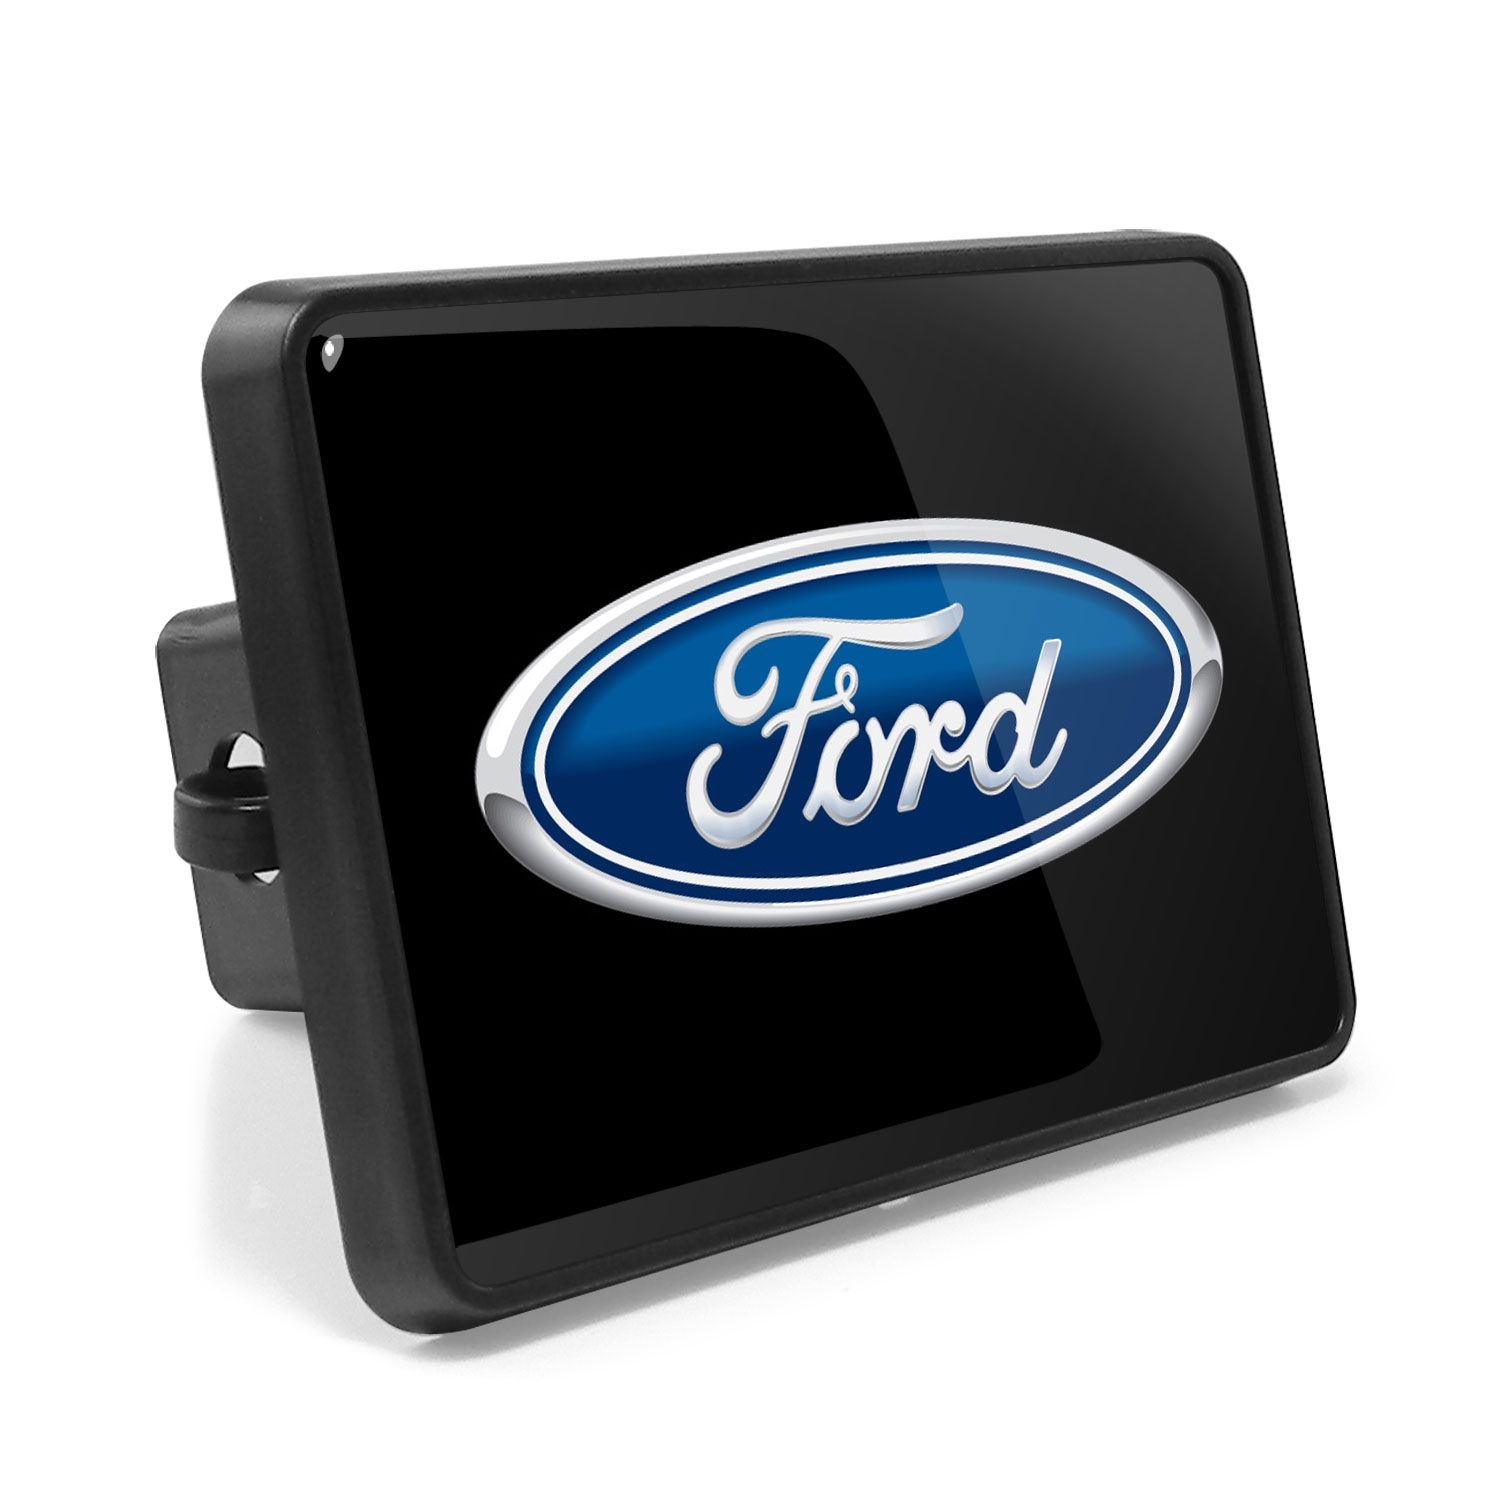 Ford Logo UV Graphic Metal Plate on ABS Plastic 2 inch Tow Hitch Cover